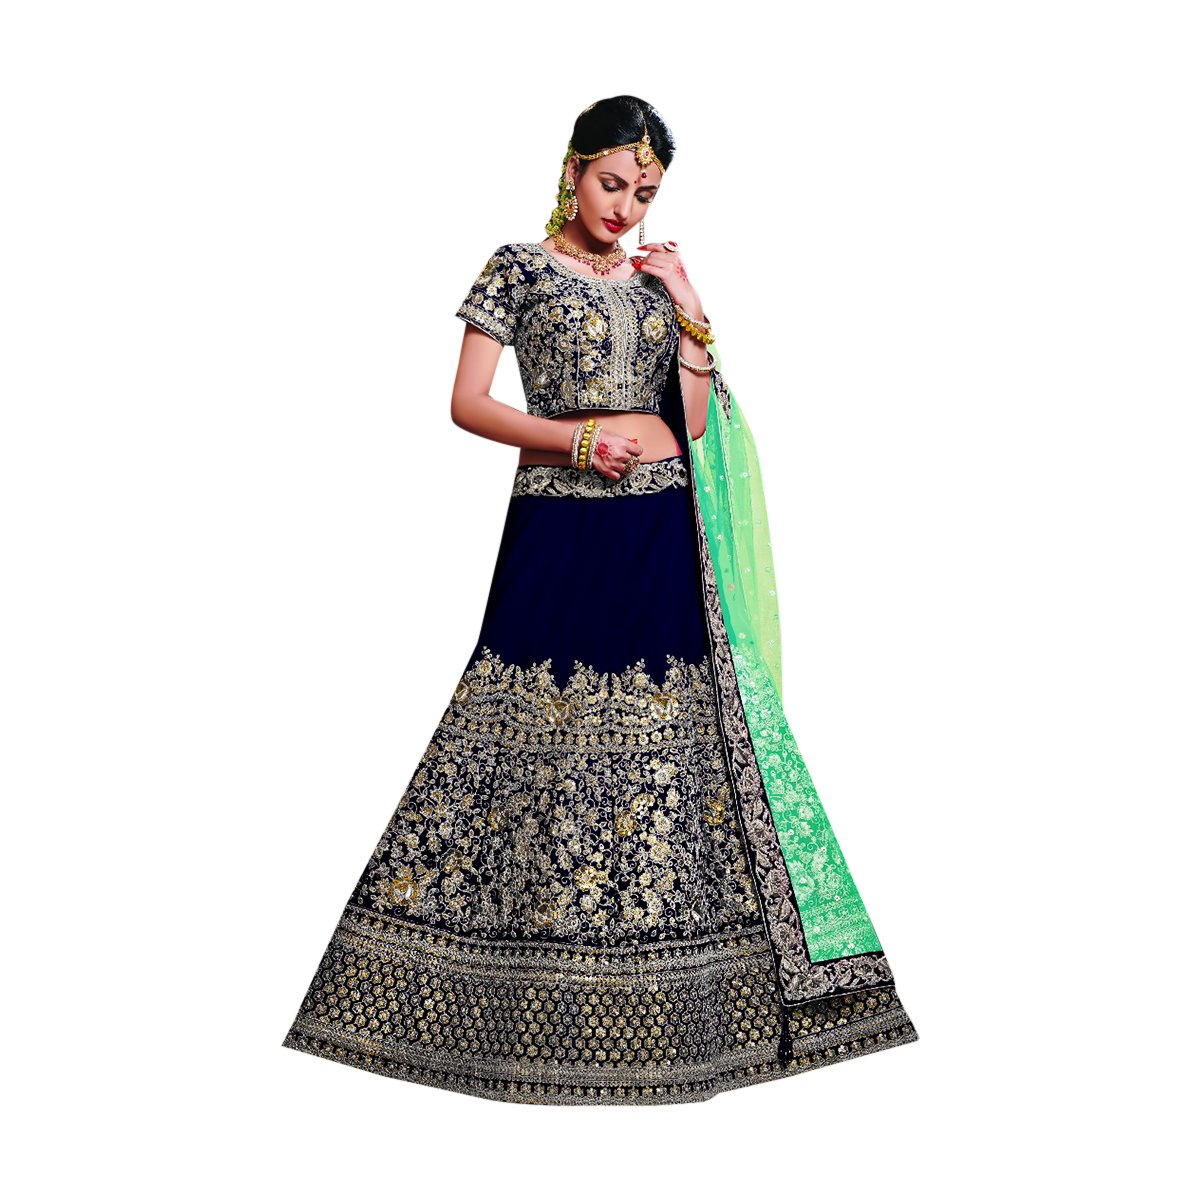 Designer Velvet Lehenga Choli Dupatta Dress Bollywood Indian Ethnic Wedding Women Muslim Bridal Embroidery Zari Work 645 (Blue) by ETHNIC EMPORIUM